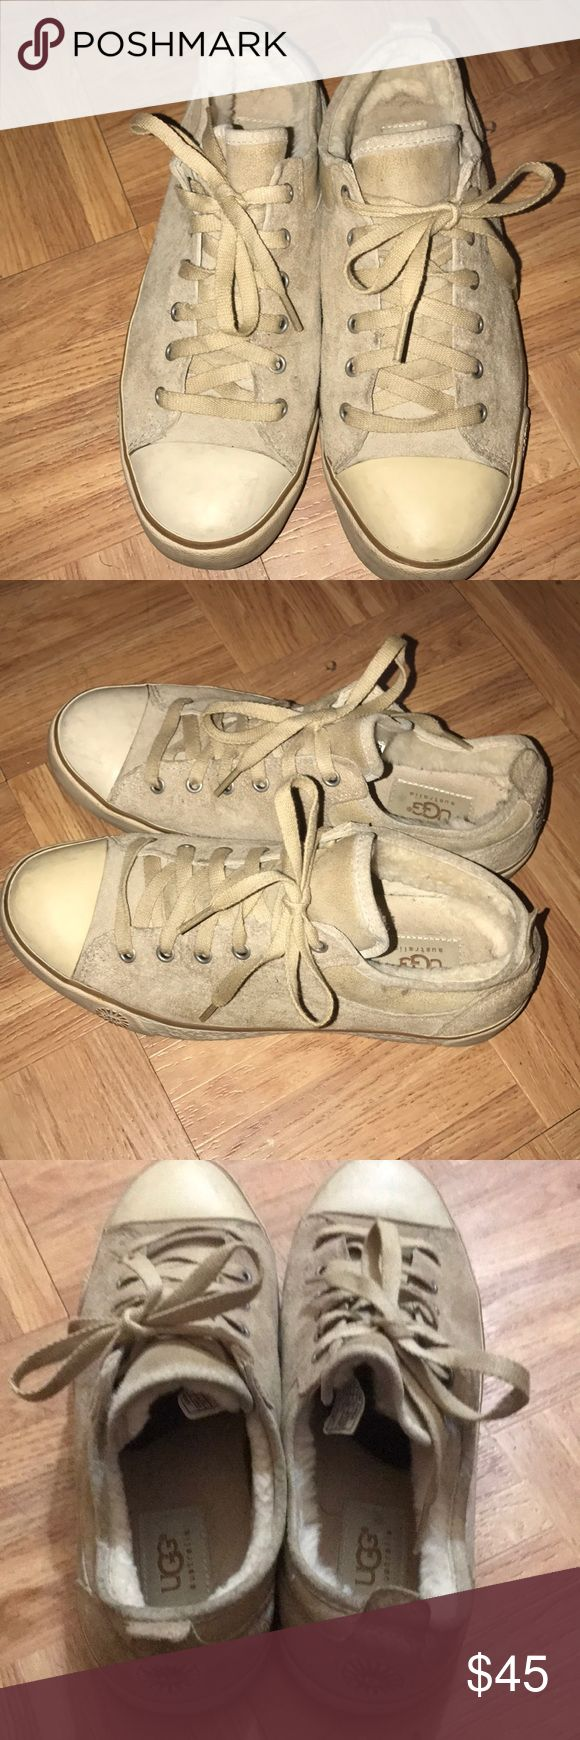 Ugg sneakers size 8 women Preloved Ugg sneakers. Does not include box. Still in great condition. UGG Shoes Sneakers